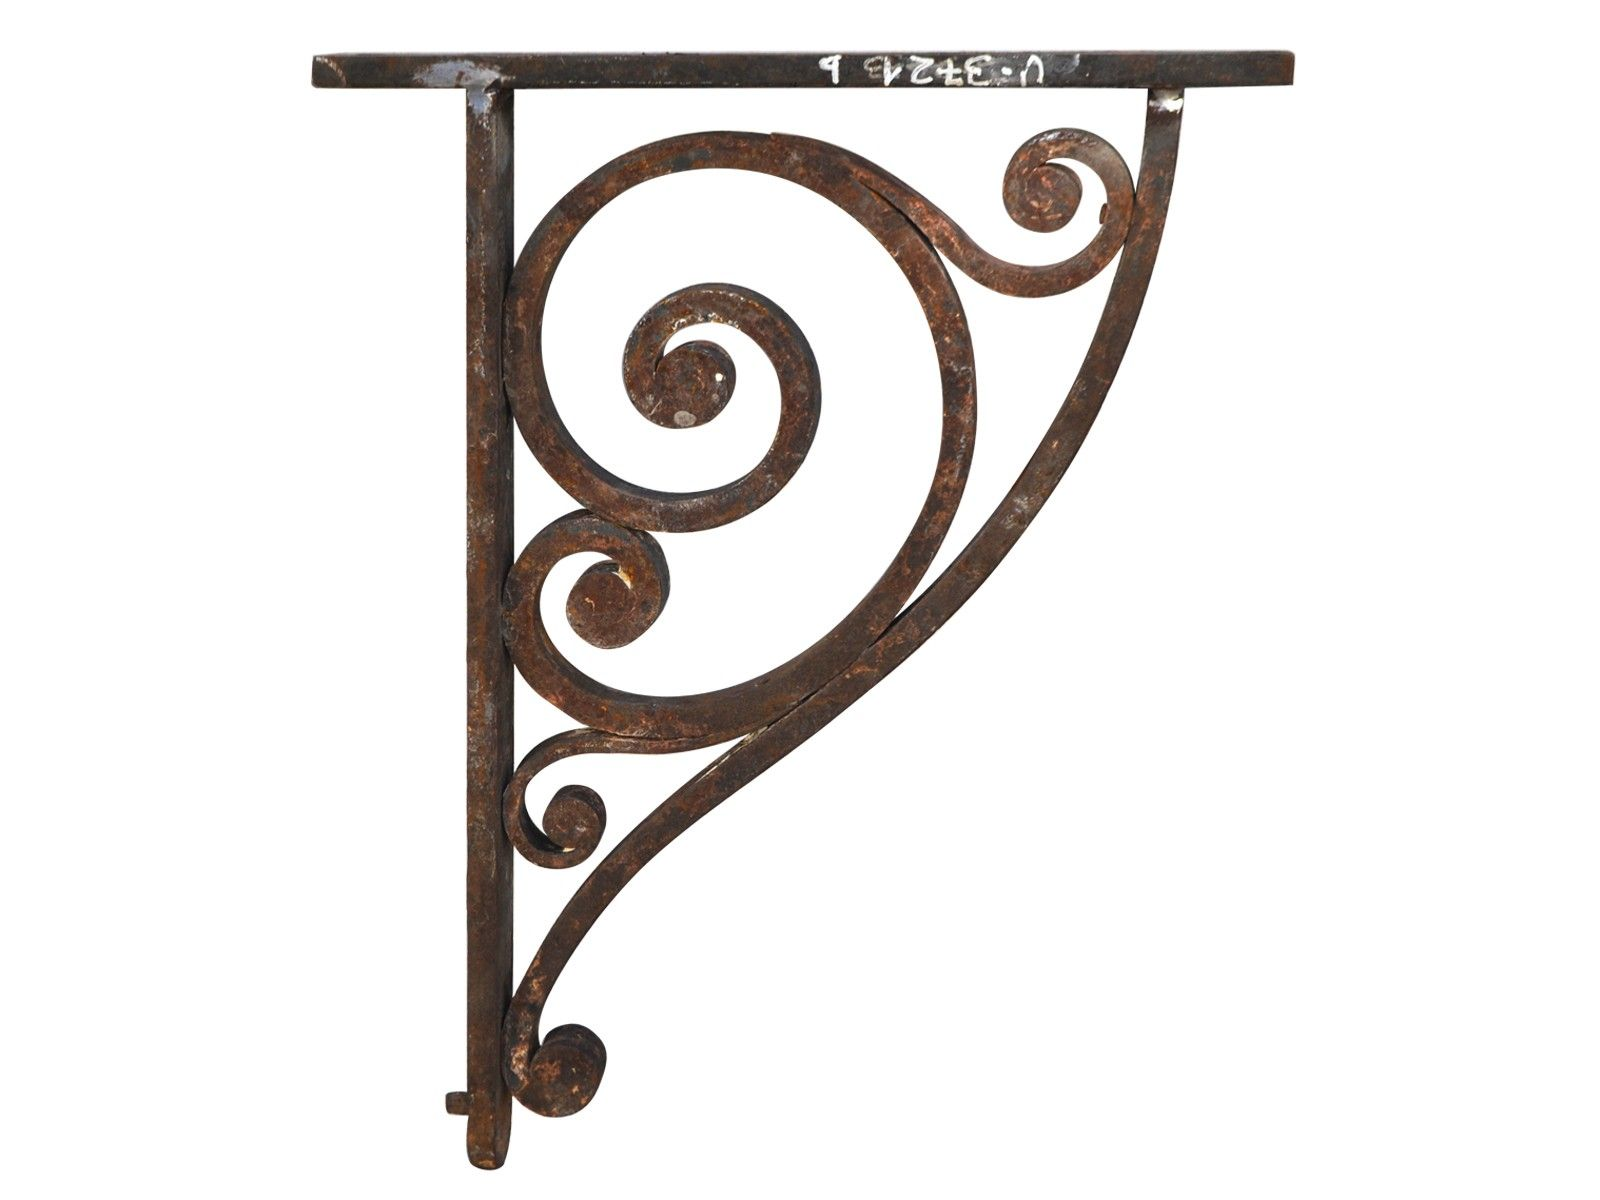 Primitive Rustic Scroll Style Hand Forged Wrought Iron Shelf.